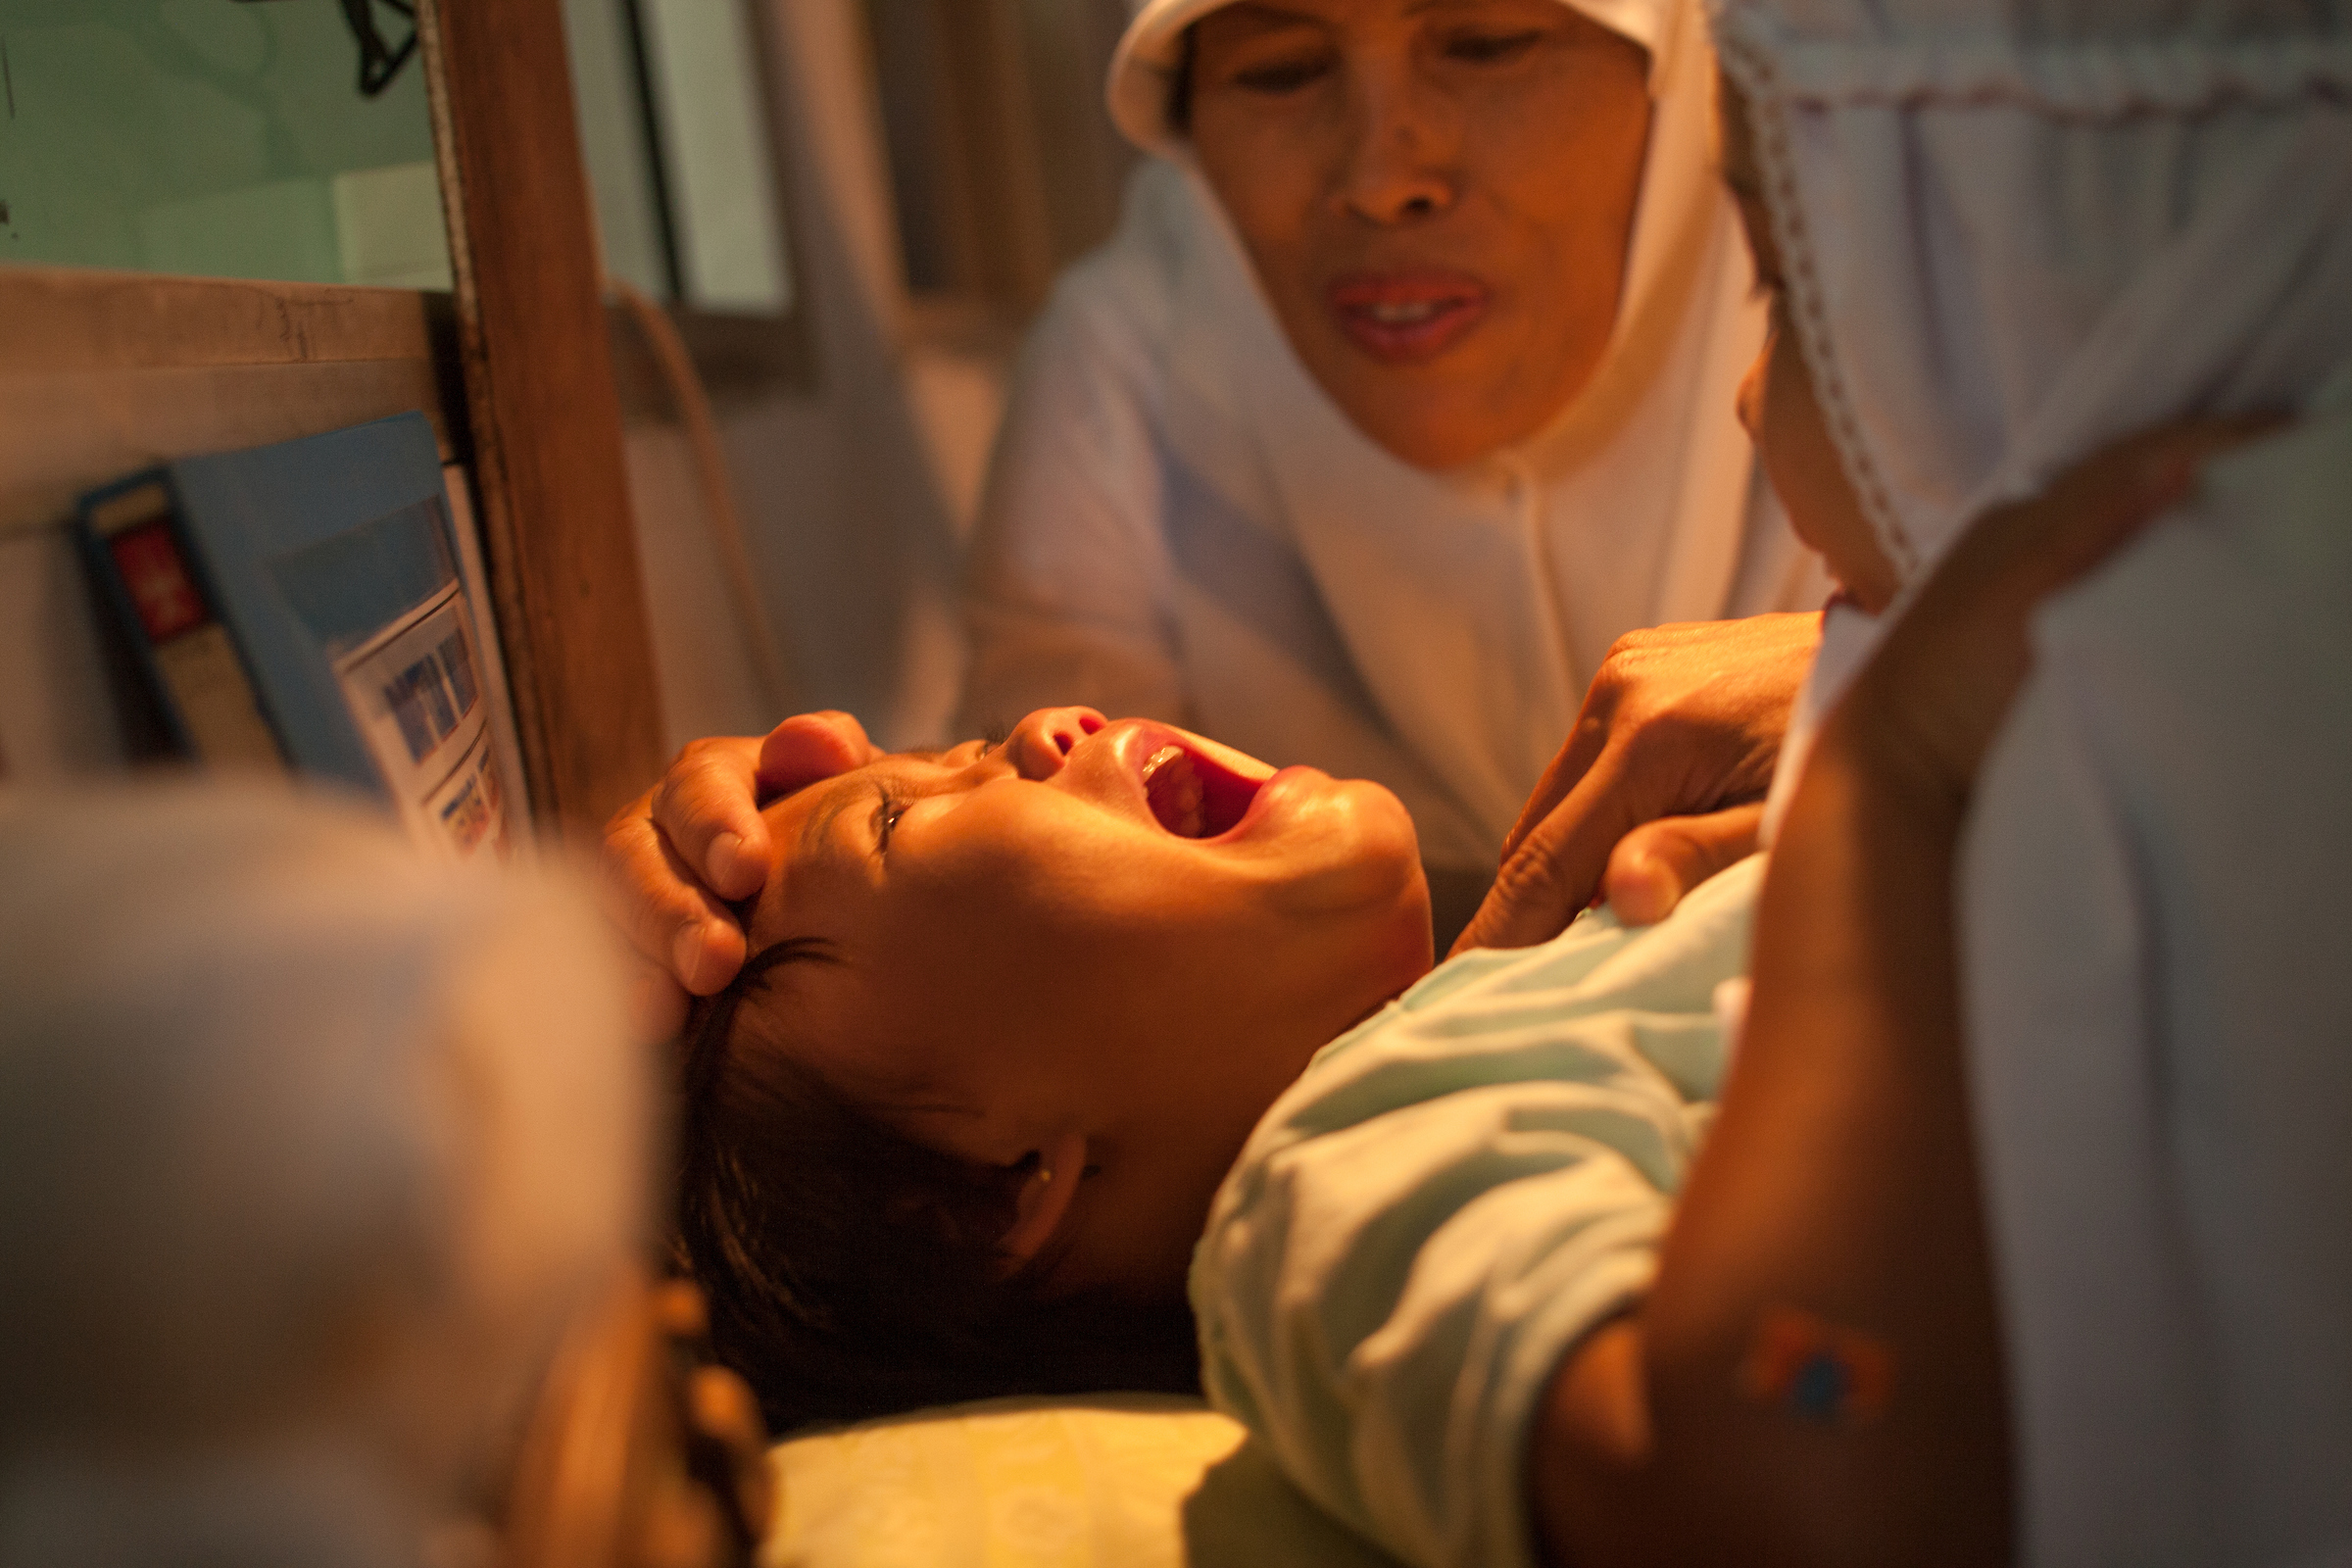 A young girl cries while being circumcised in Bandung, Indonesia.